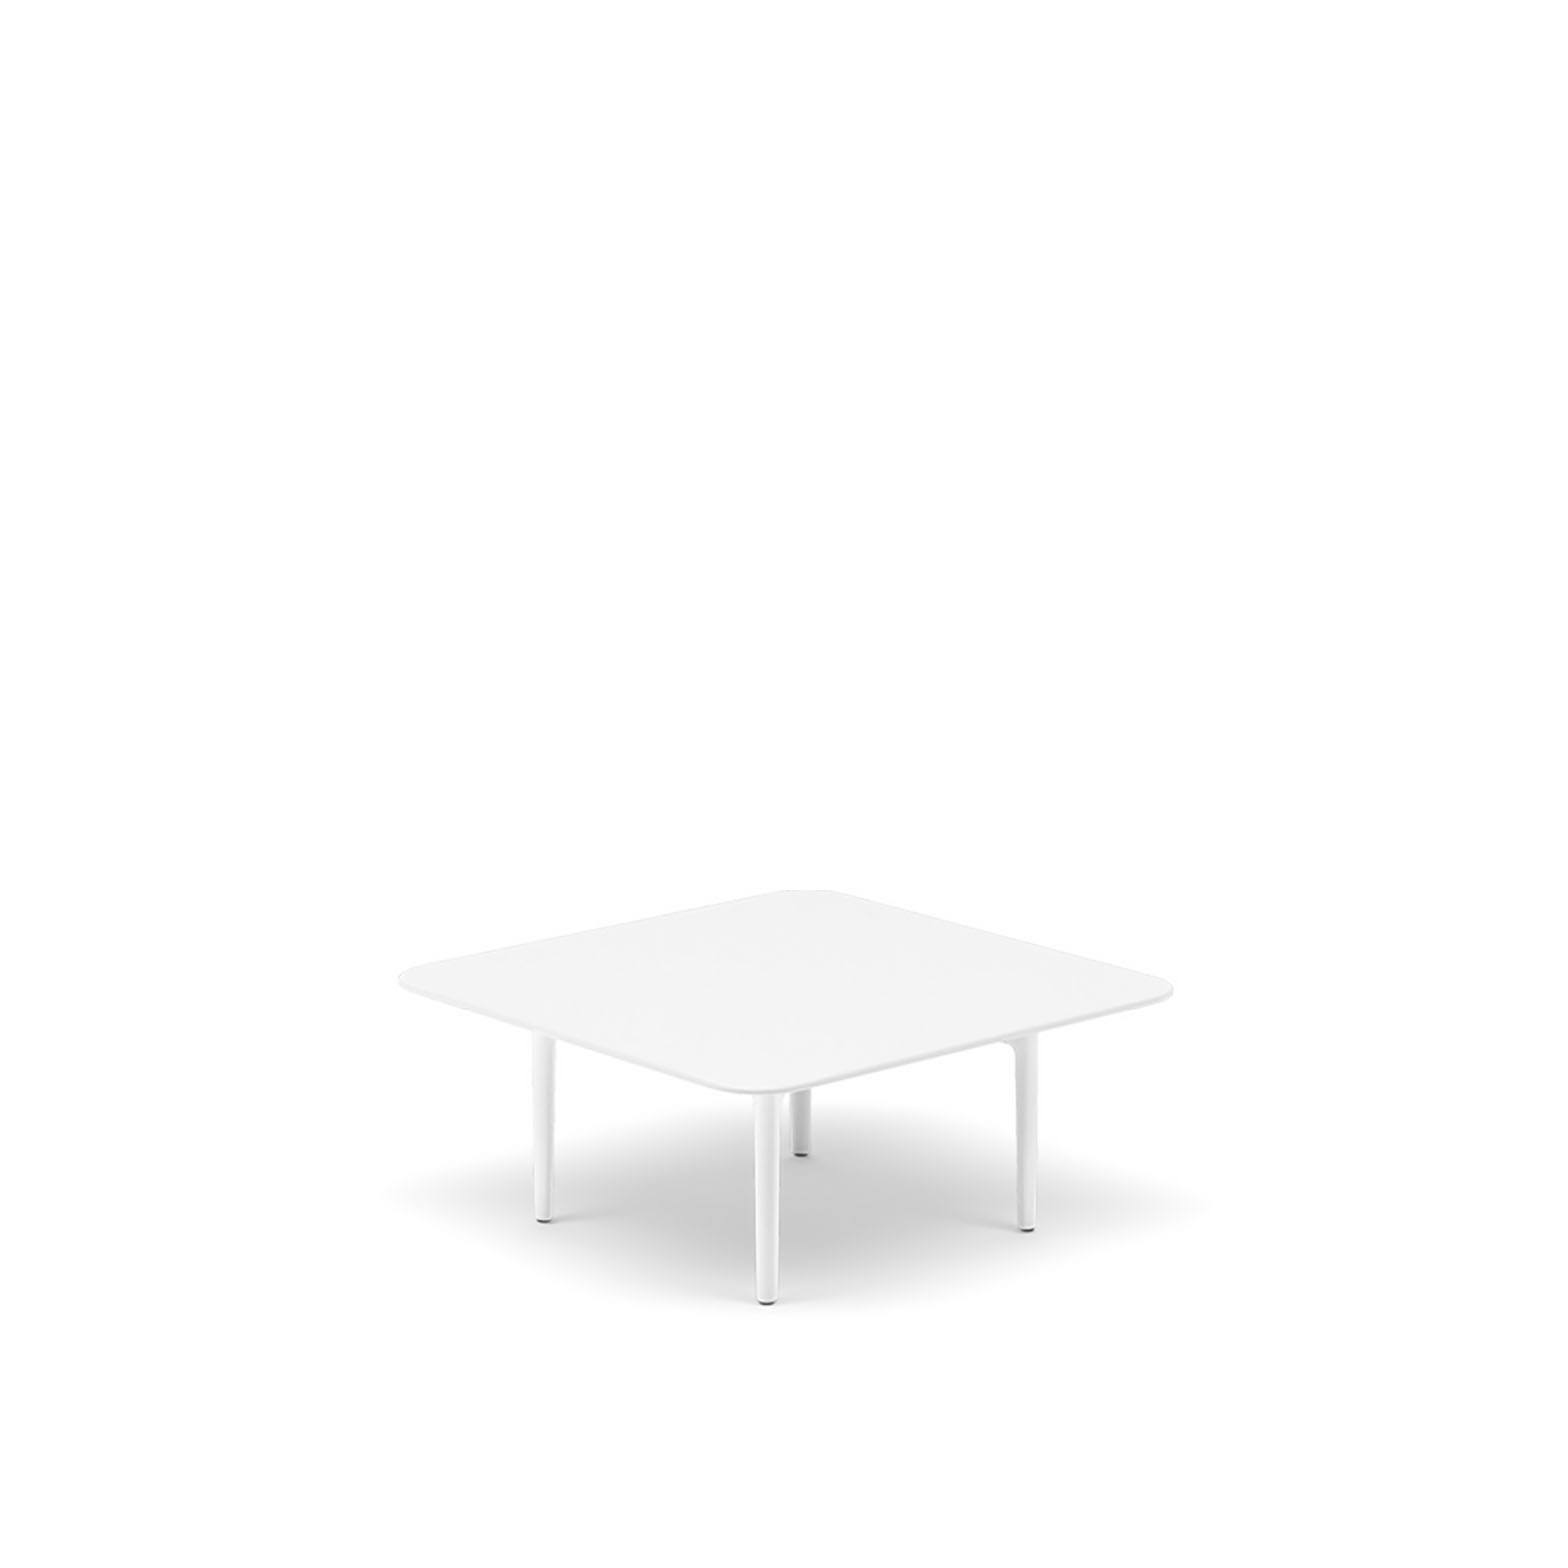 DEDON-BREA-Coffee-table-square-white-90x90.jpg